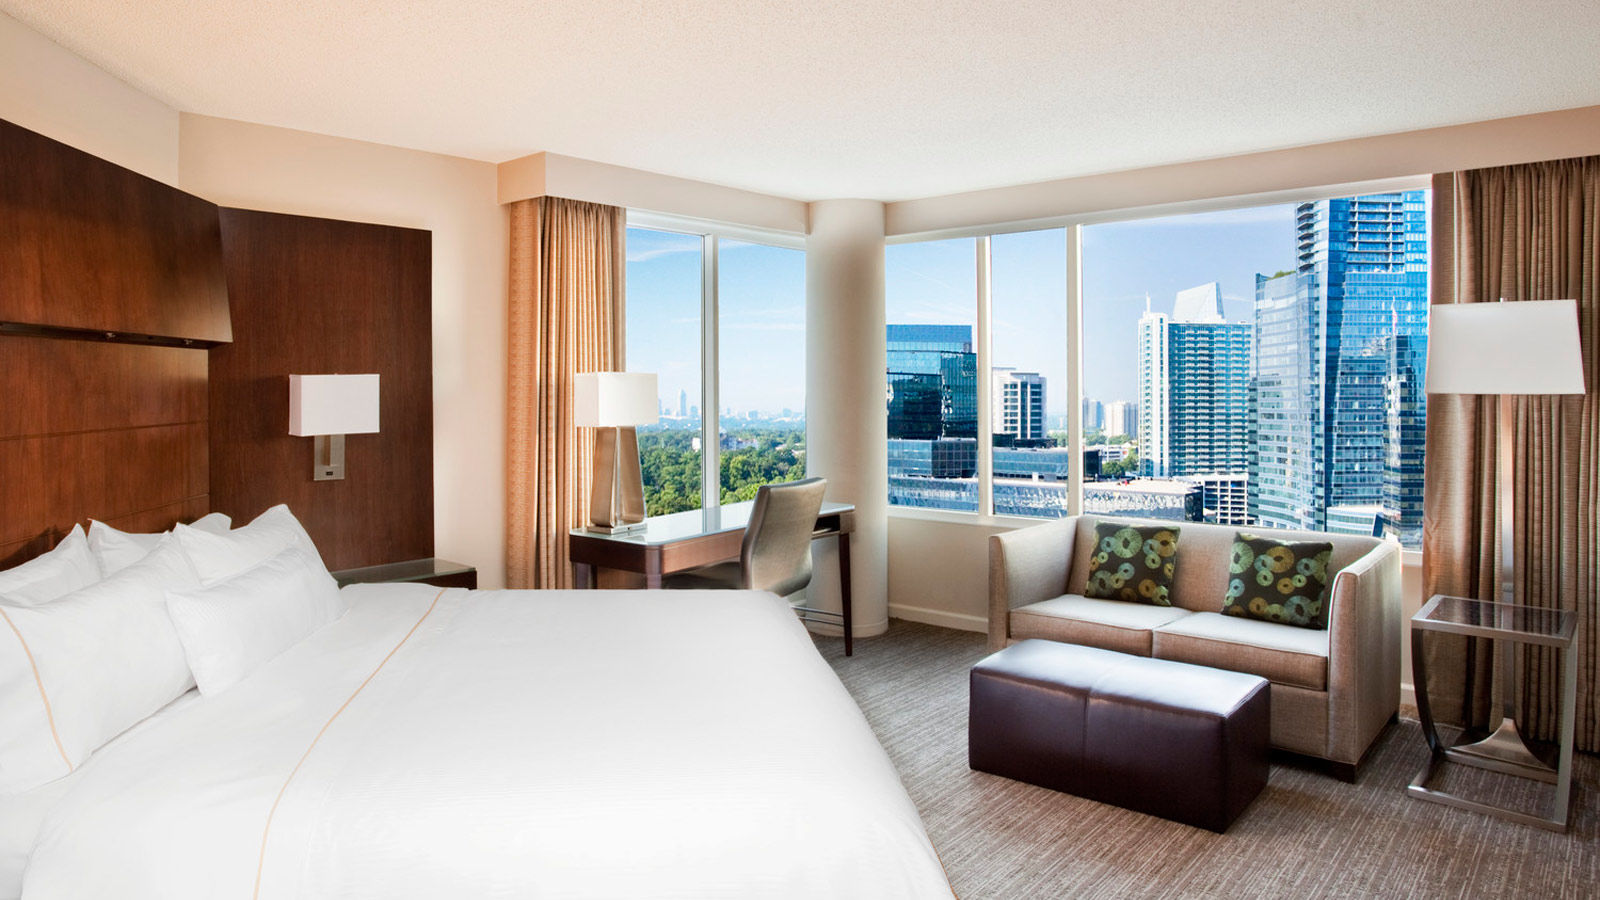 Top 5 Accommodations in Atlanta for Students